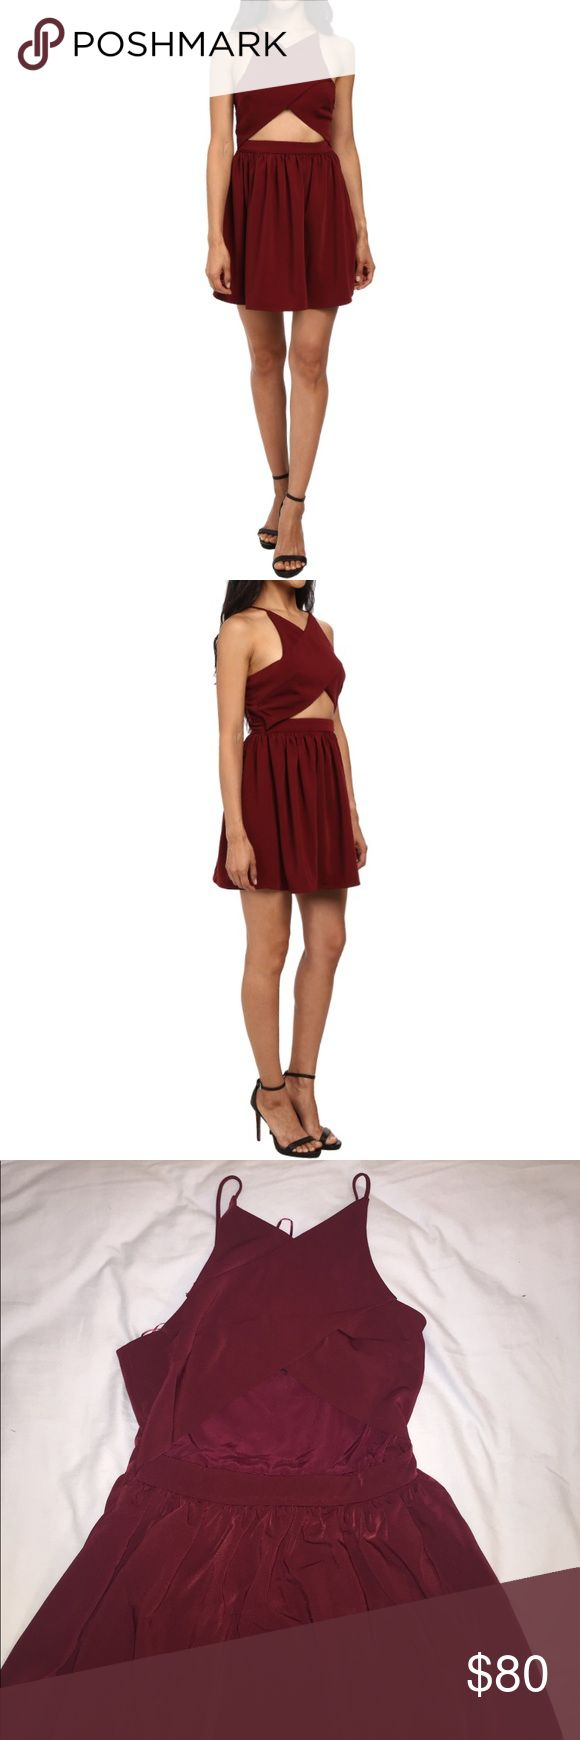 Mahogany dress NWT, has a cutout on front with a flare skirt. Super cute dark red color. Adjustable straps. This one is just a tad bit wrinkly so it does need to be ironed a bit. Going on sale Nov 22nd! Stylestalker Dresses Mini